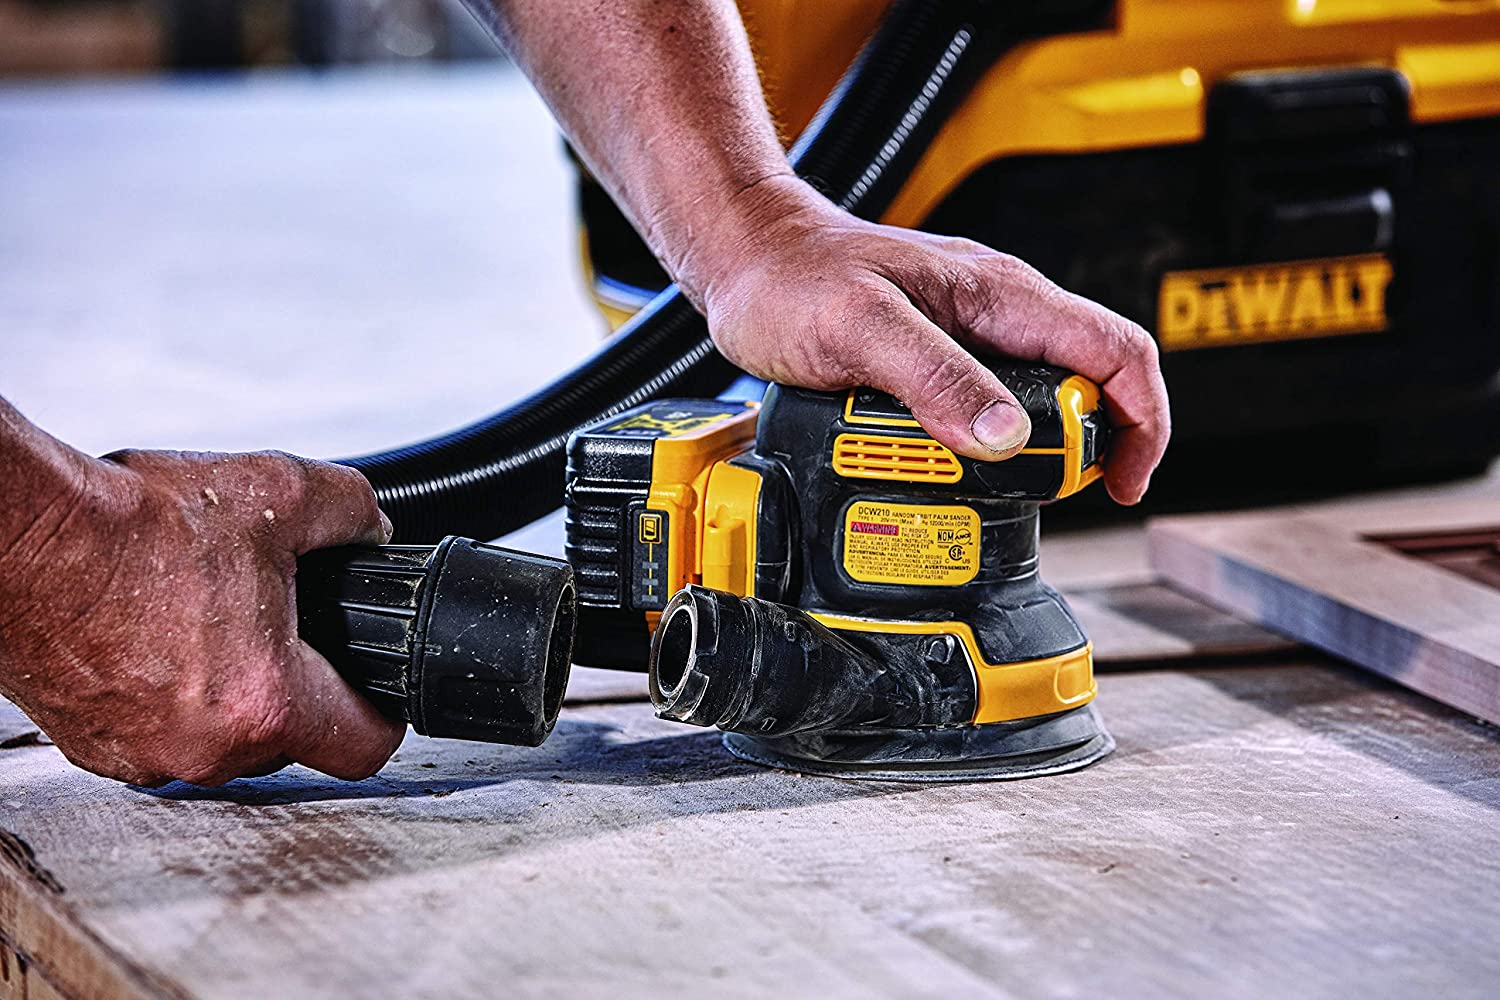 wood worker attaching exhaust pipe to rotary sander